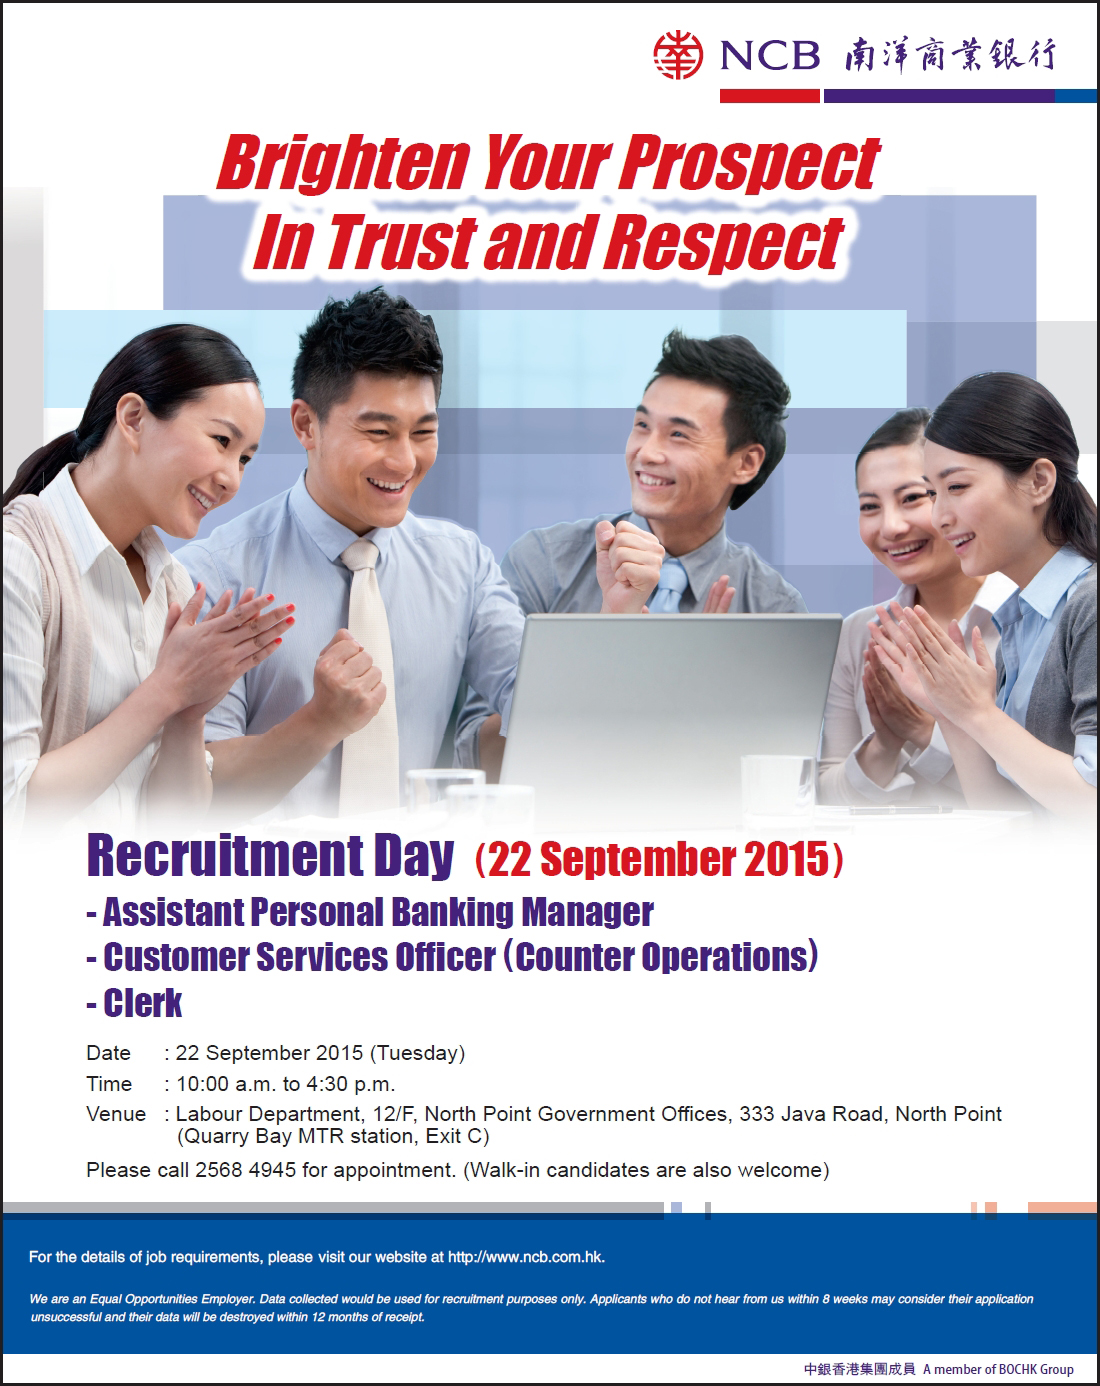 Recruitment Day on 22 September 2015 offered by Nanyang Commercial Bank